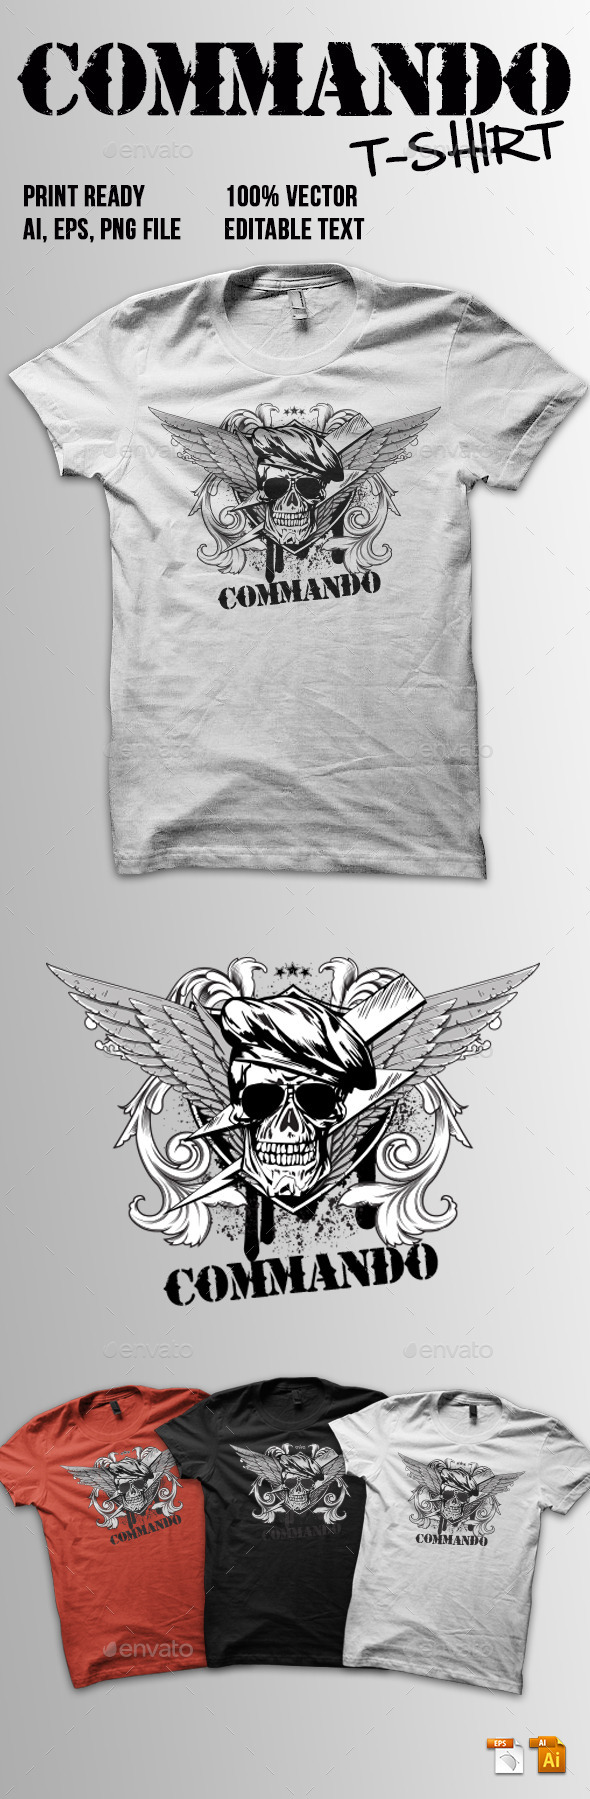 Commando T-Shirt - Grunge Designs